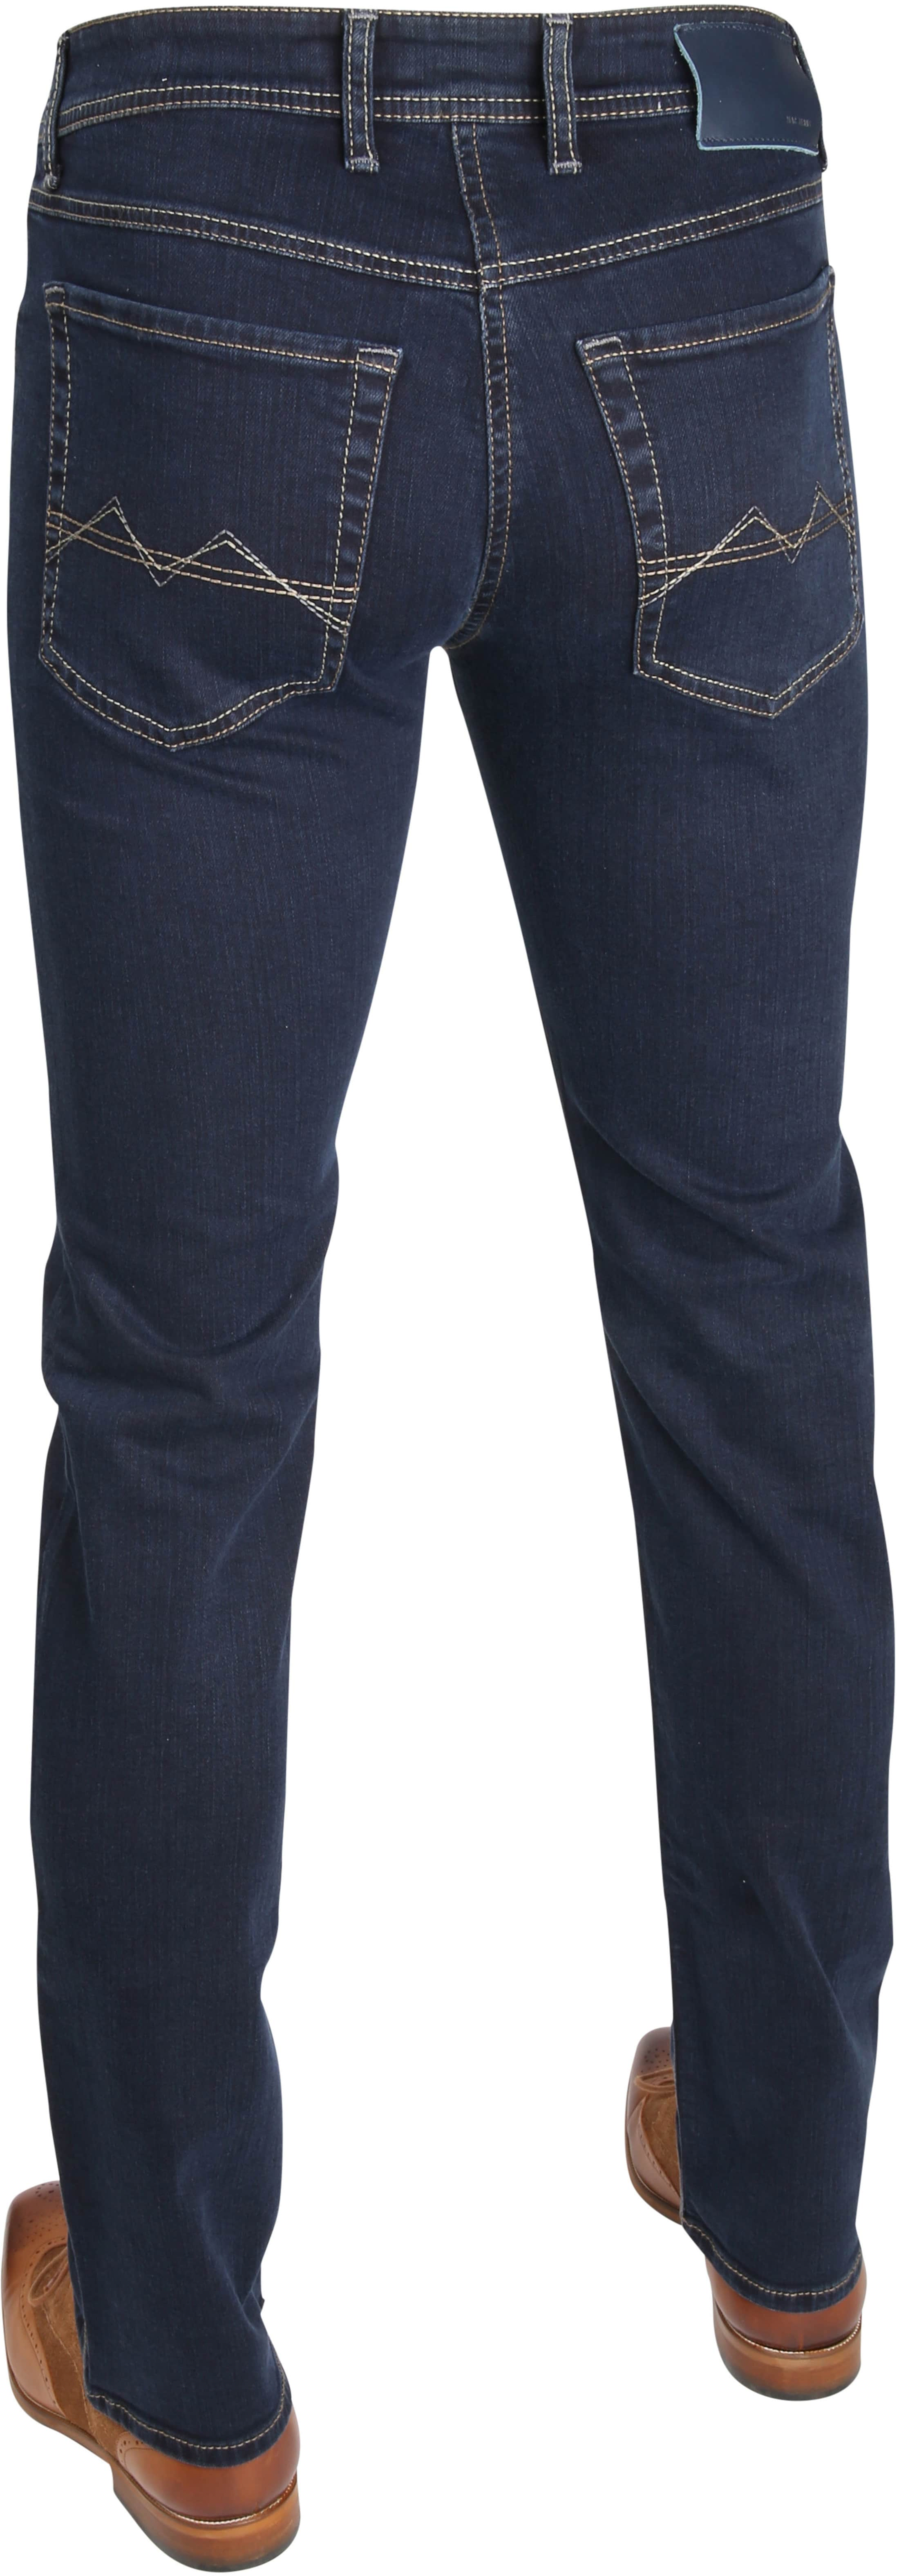 Mac Broek Arne Stretch Blue Black H799 foto 3